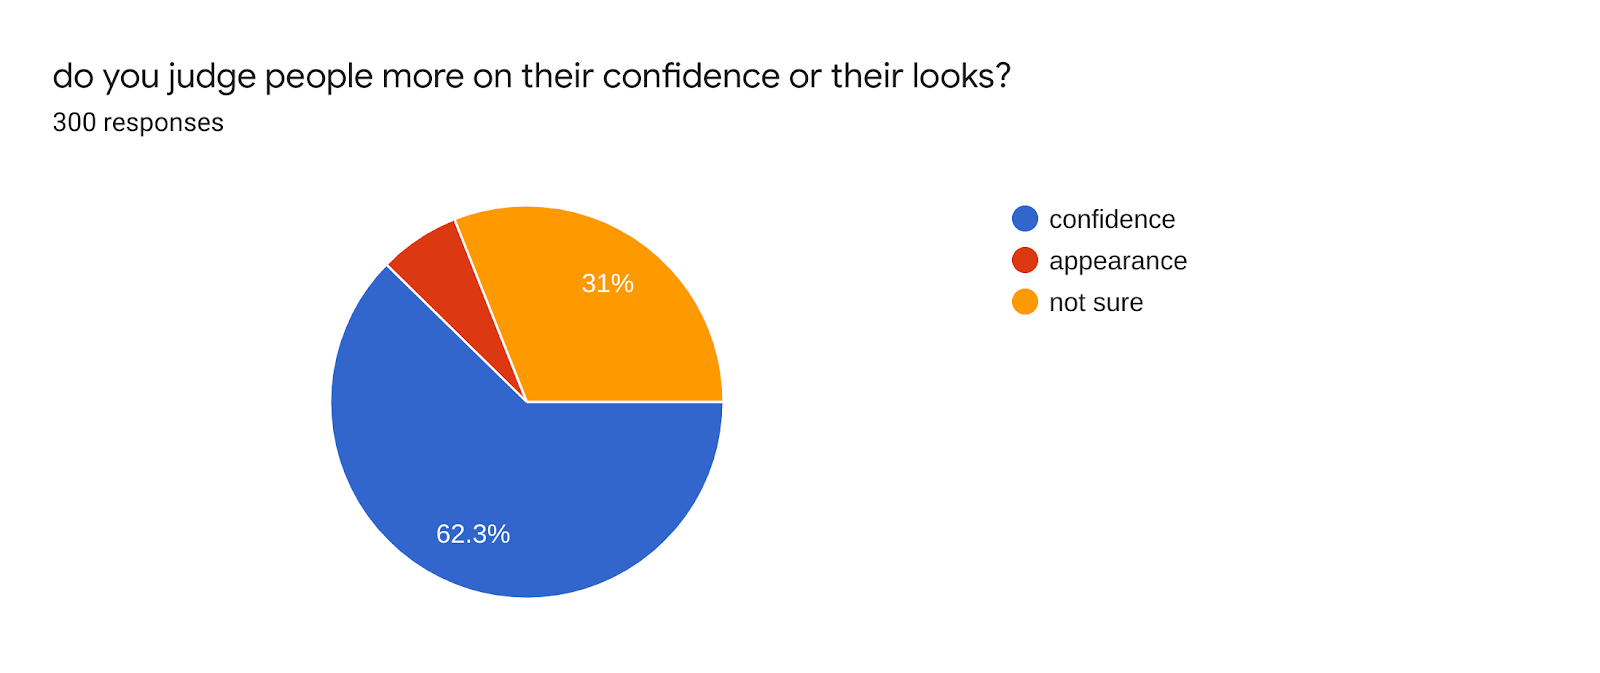 Forms response chart. Question title: do you judge people more on their confidence or their looks?. Number of responses: 300 responses.